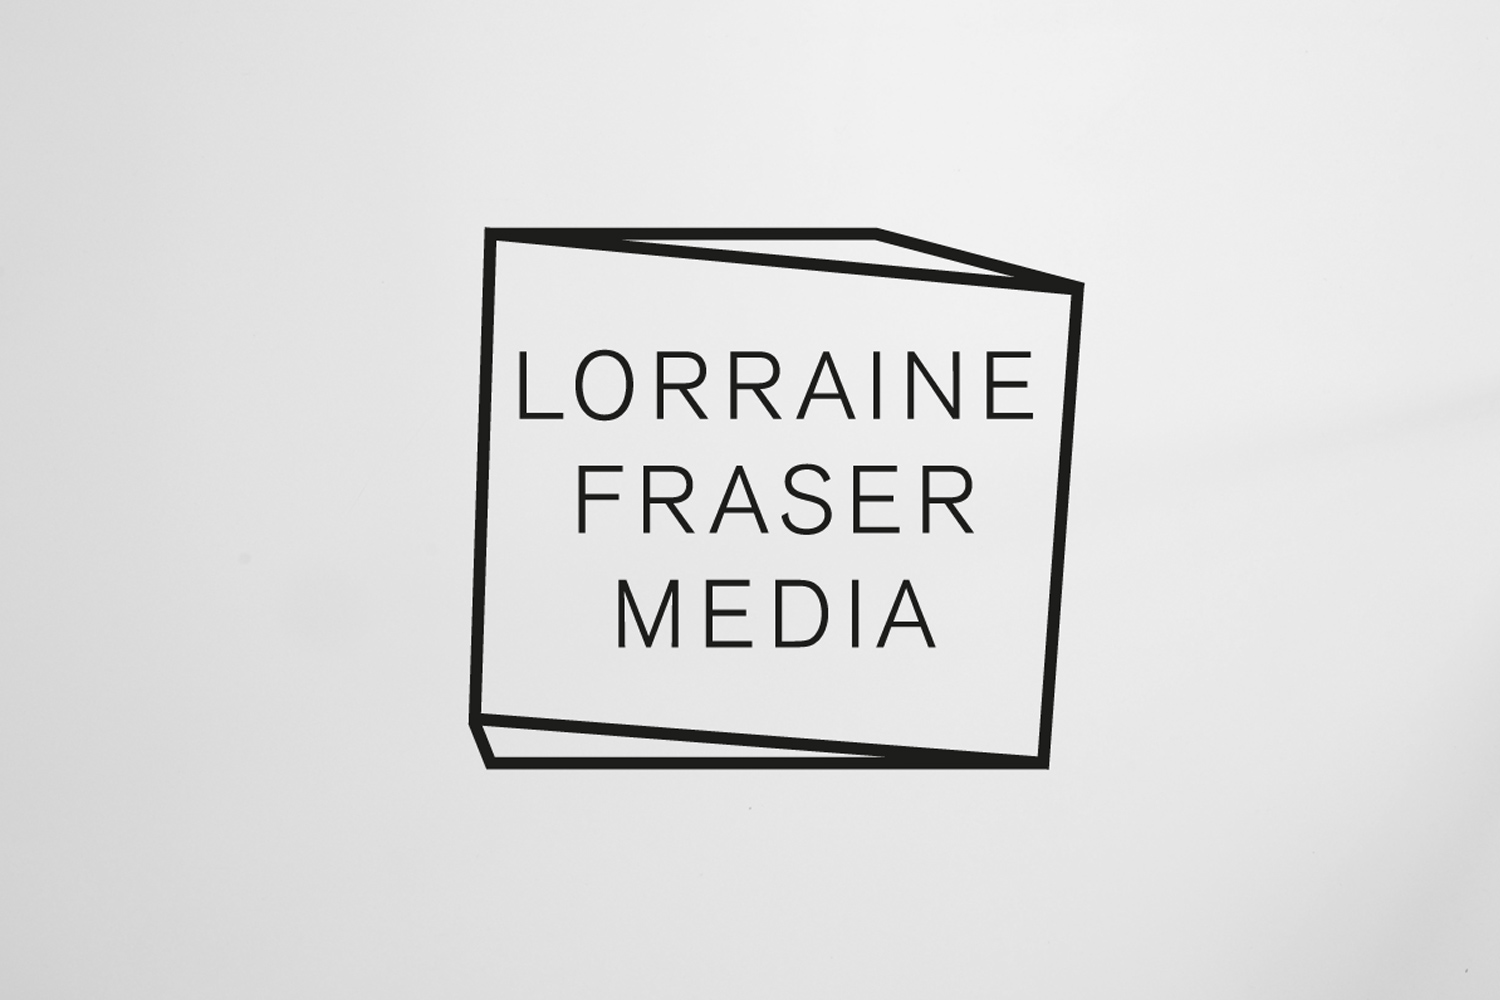 1-LORRAINE-FRASER-MEDIA-UP-TO-YOU-STUDIO-EVENTS-&-CONFERENCES-ART-&-CULTURE